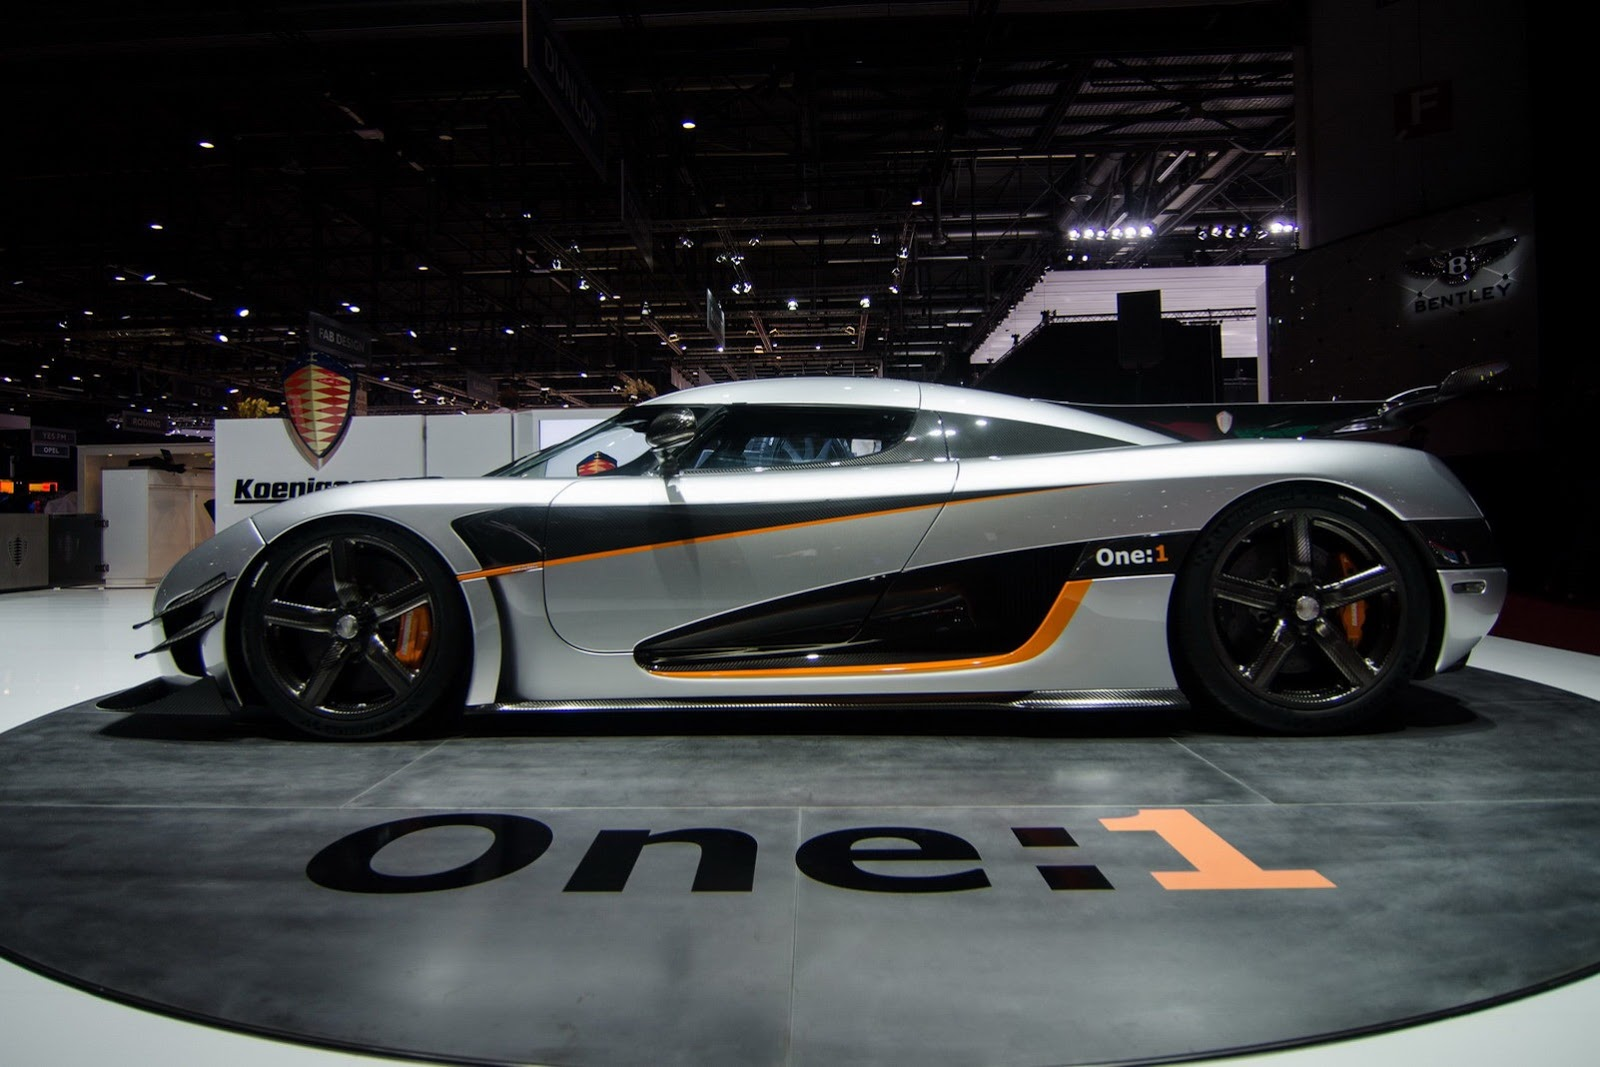 koenigsegg videos video 1 - photo #11